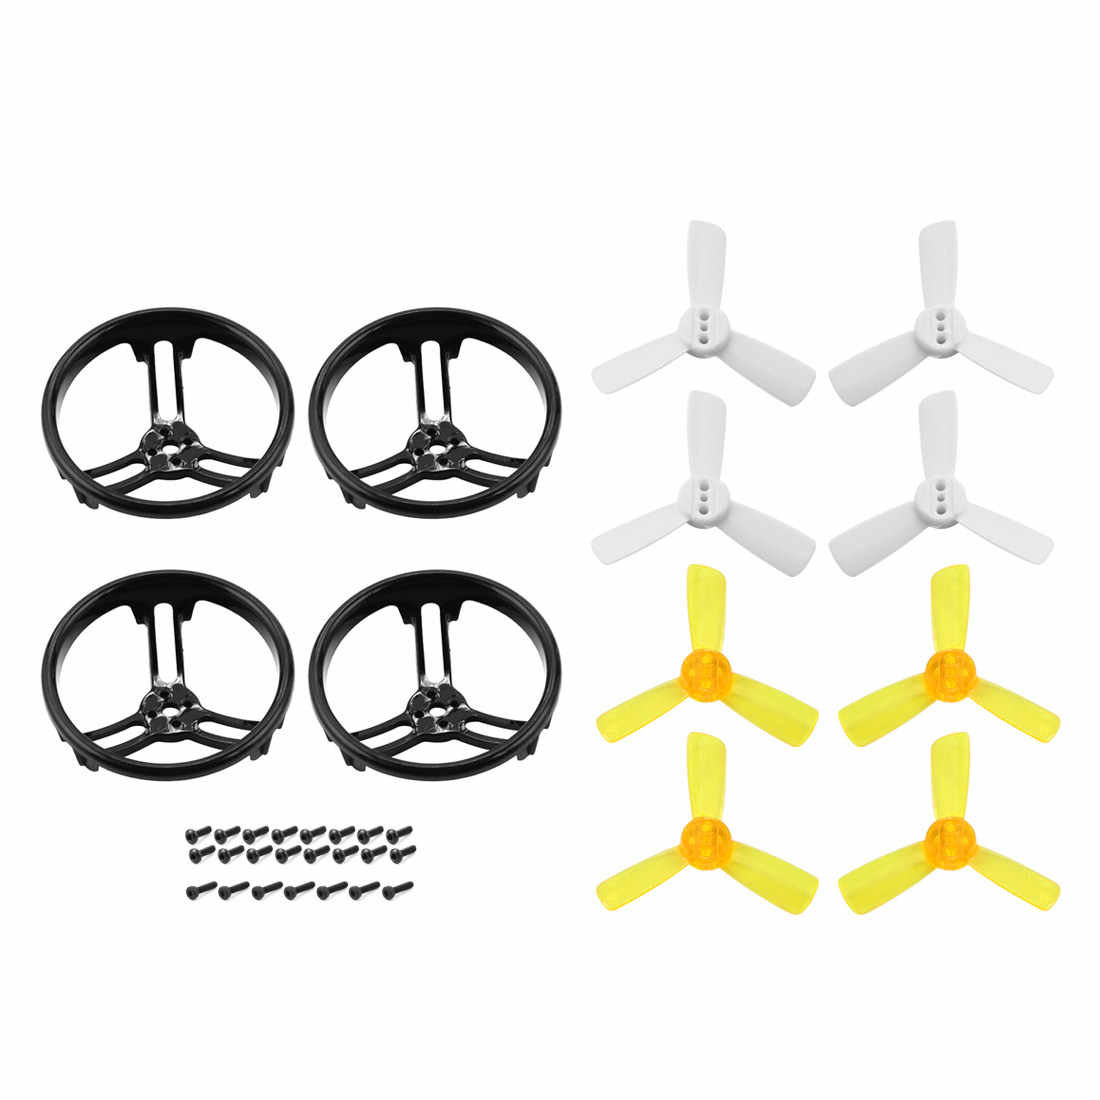 Details about  /2.8 inch 2840 Propeller Prop Guard Protector Bumper for KingKong Drone